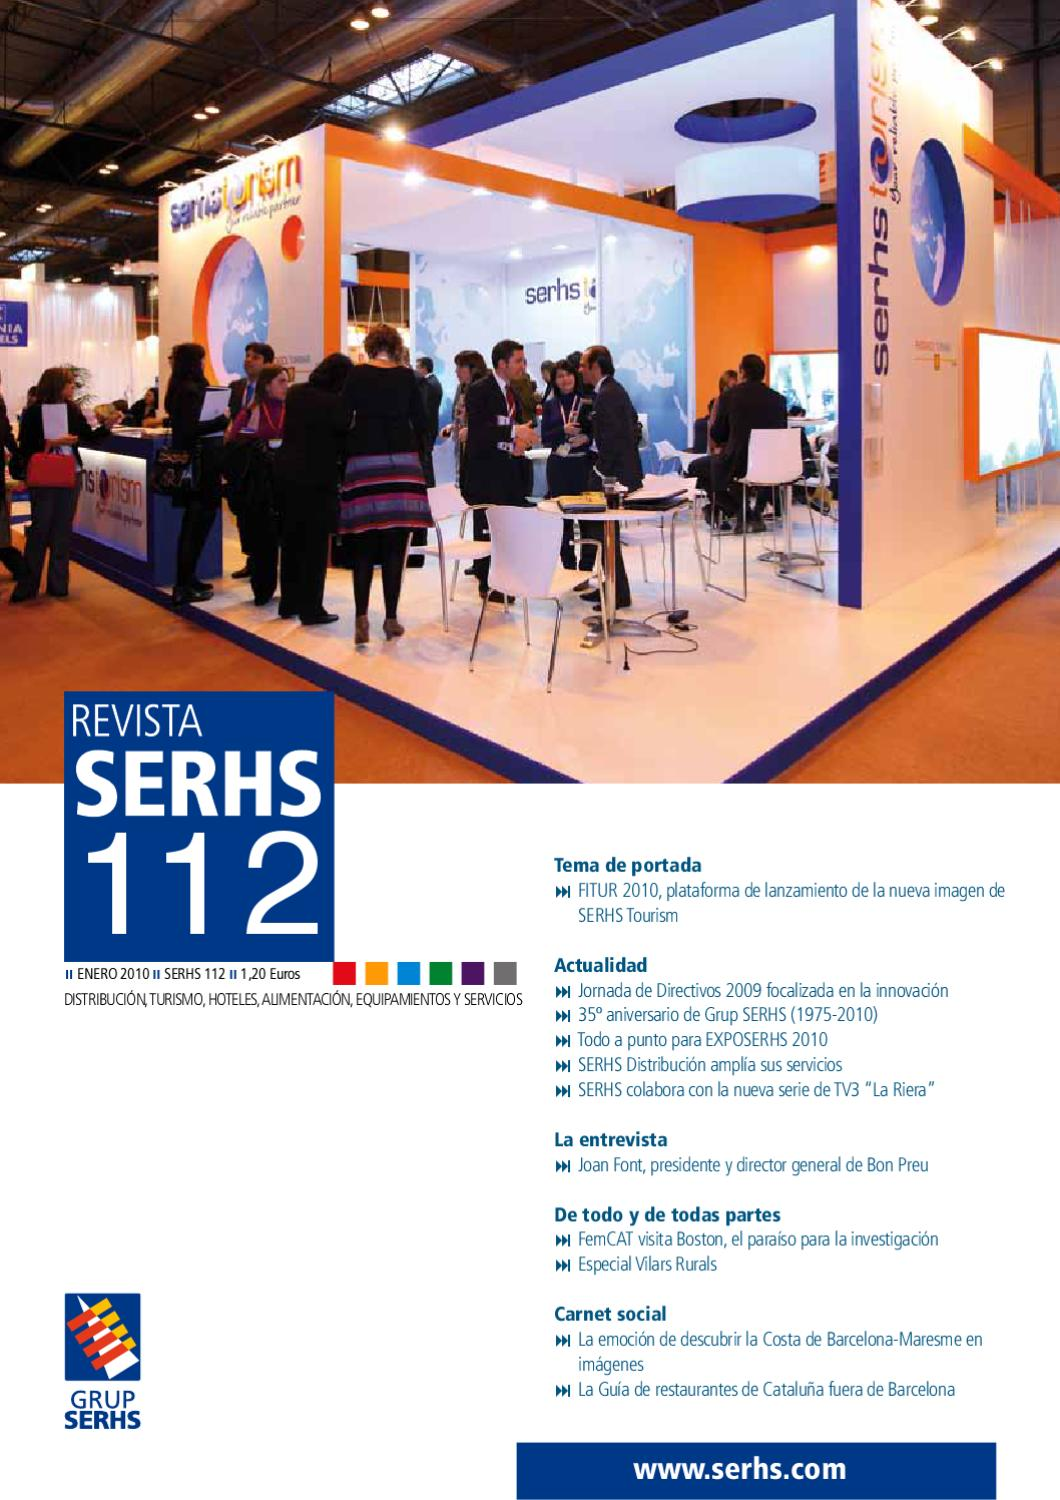 revista serhs 112 esp by migjornser issuu